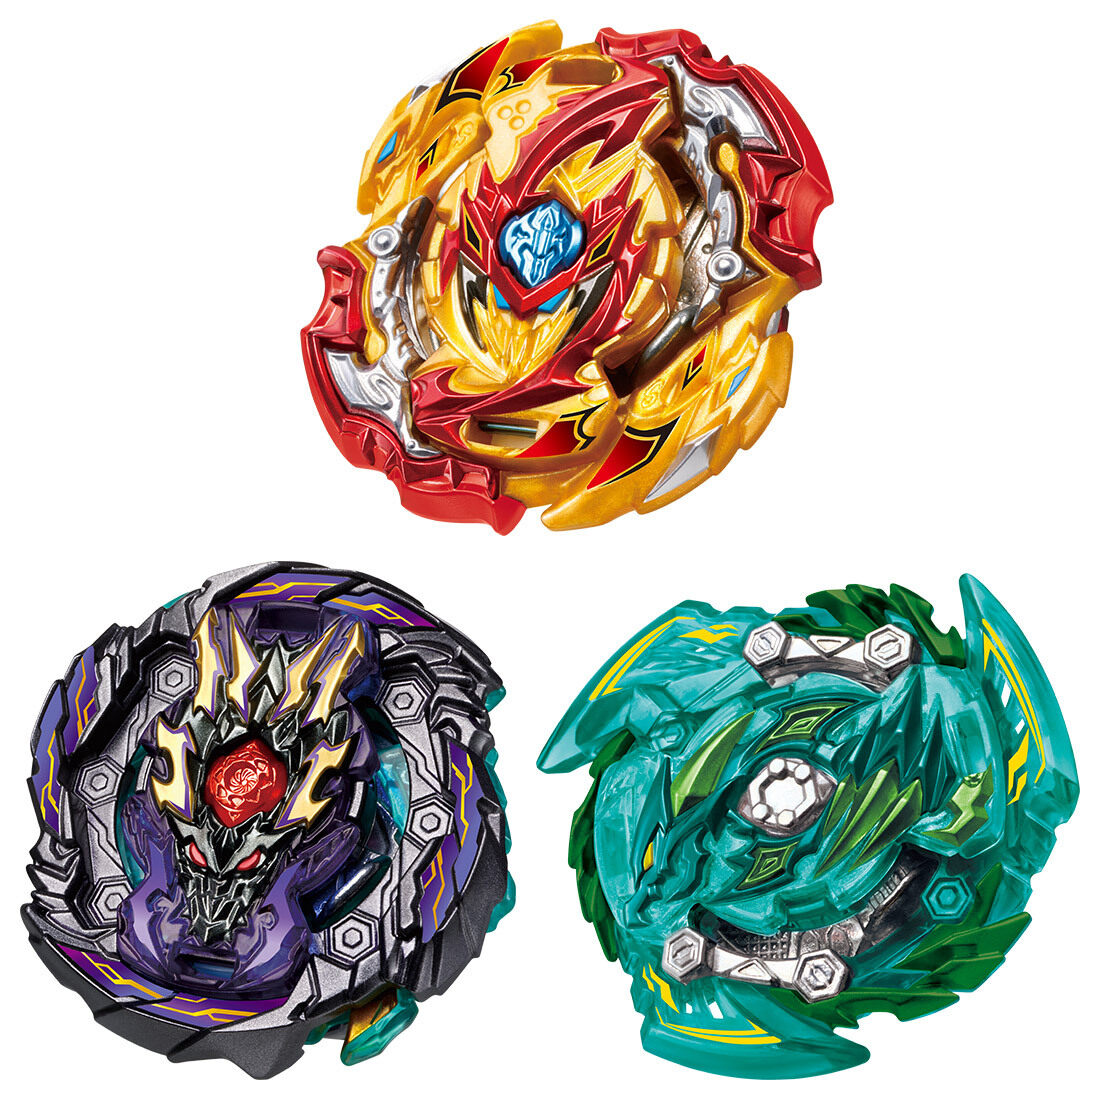 Last1 Beyblade Receiving Box Only Portable Takara Tomy Storage For 15 & 30 pcs Toys for boys Free 1 Beyblade